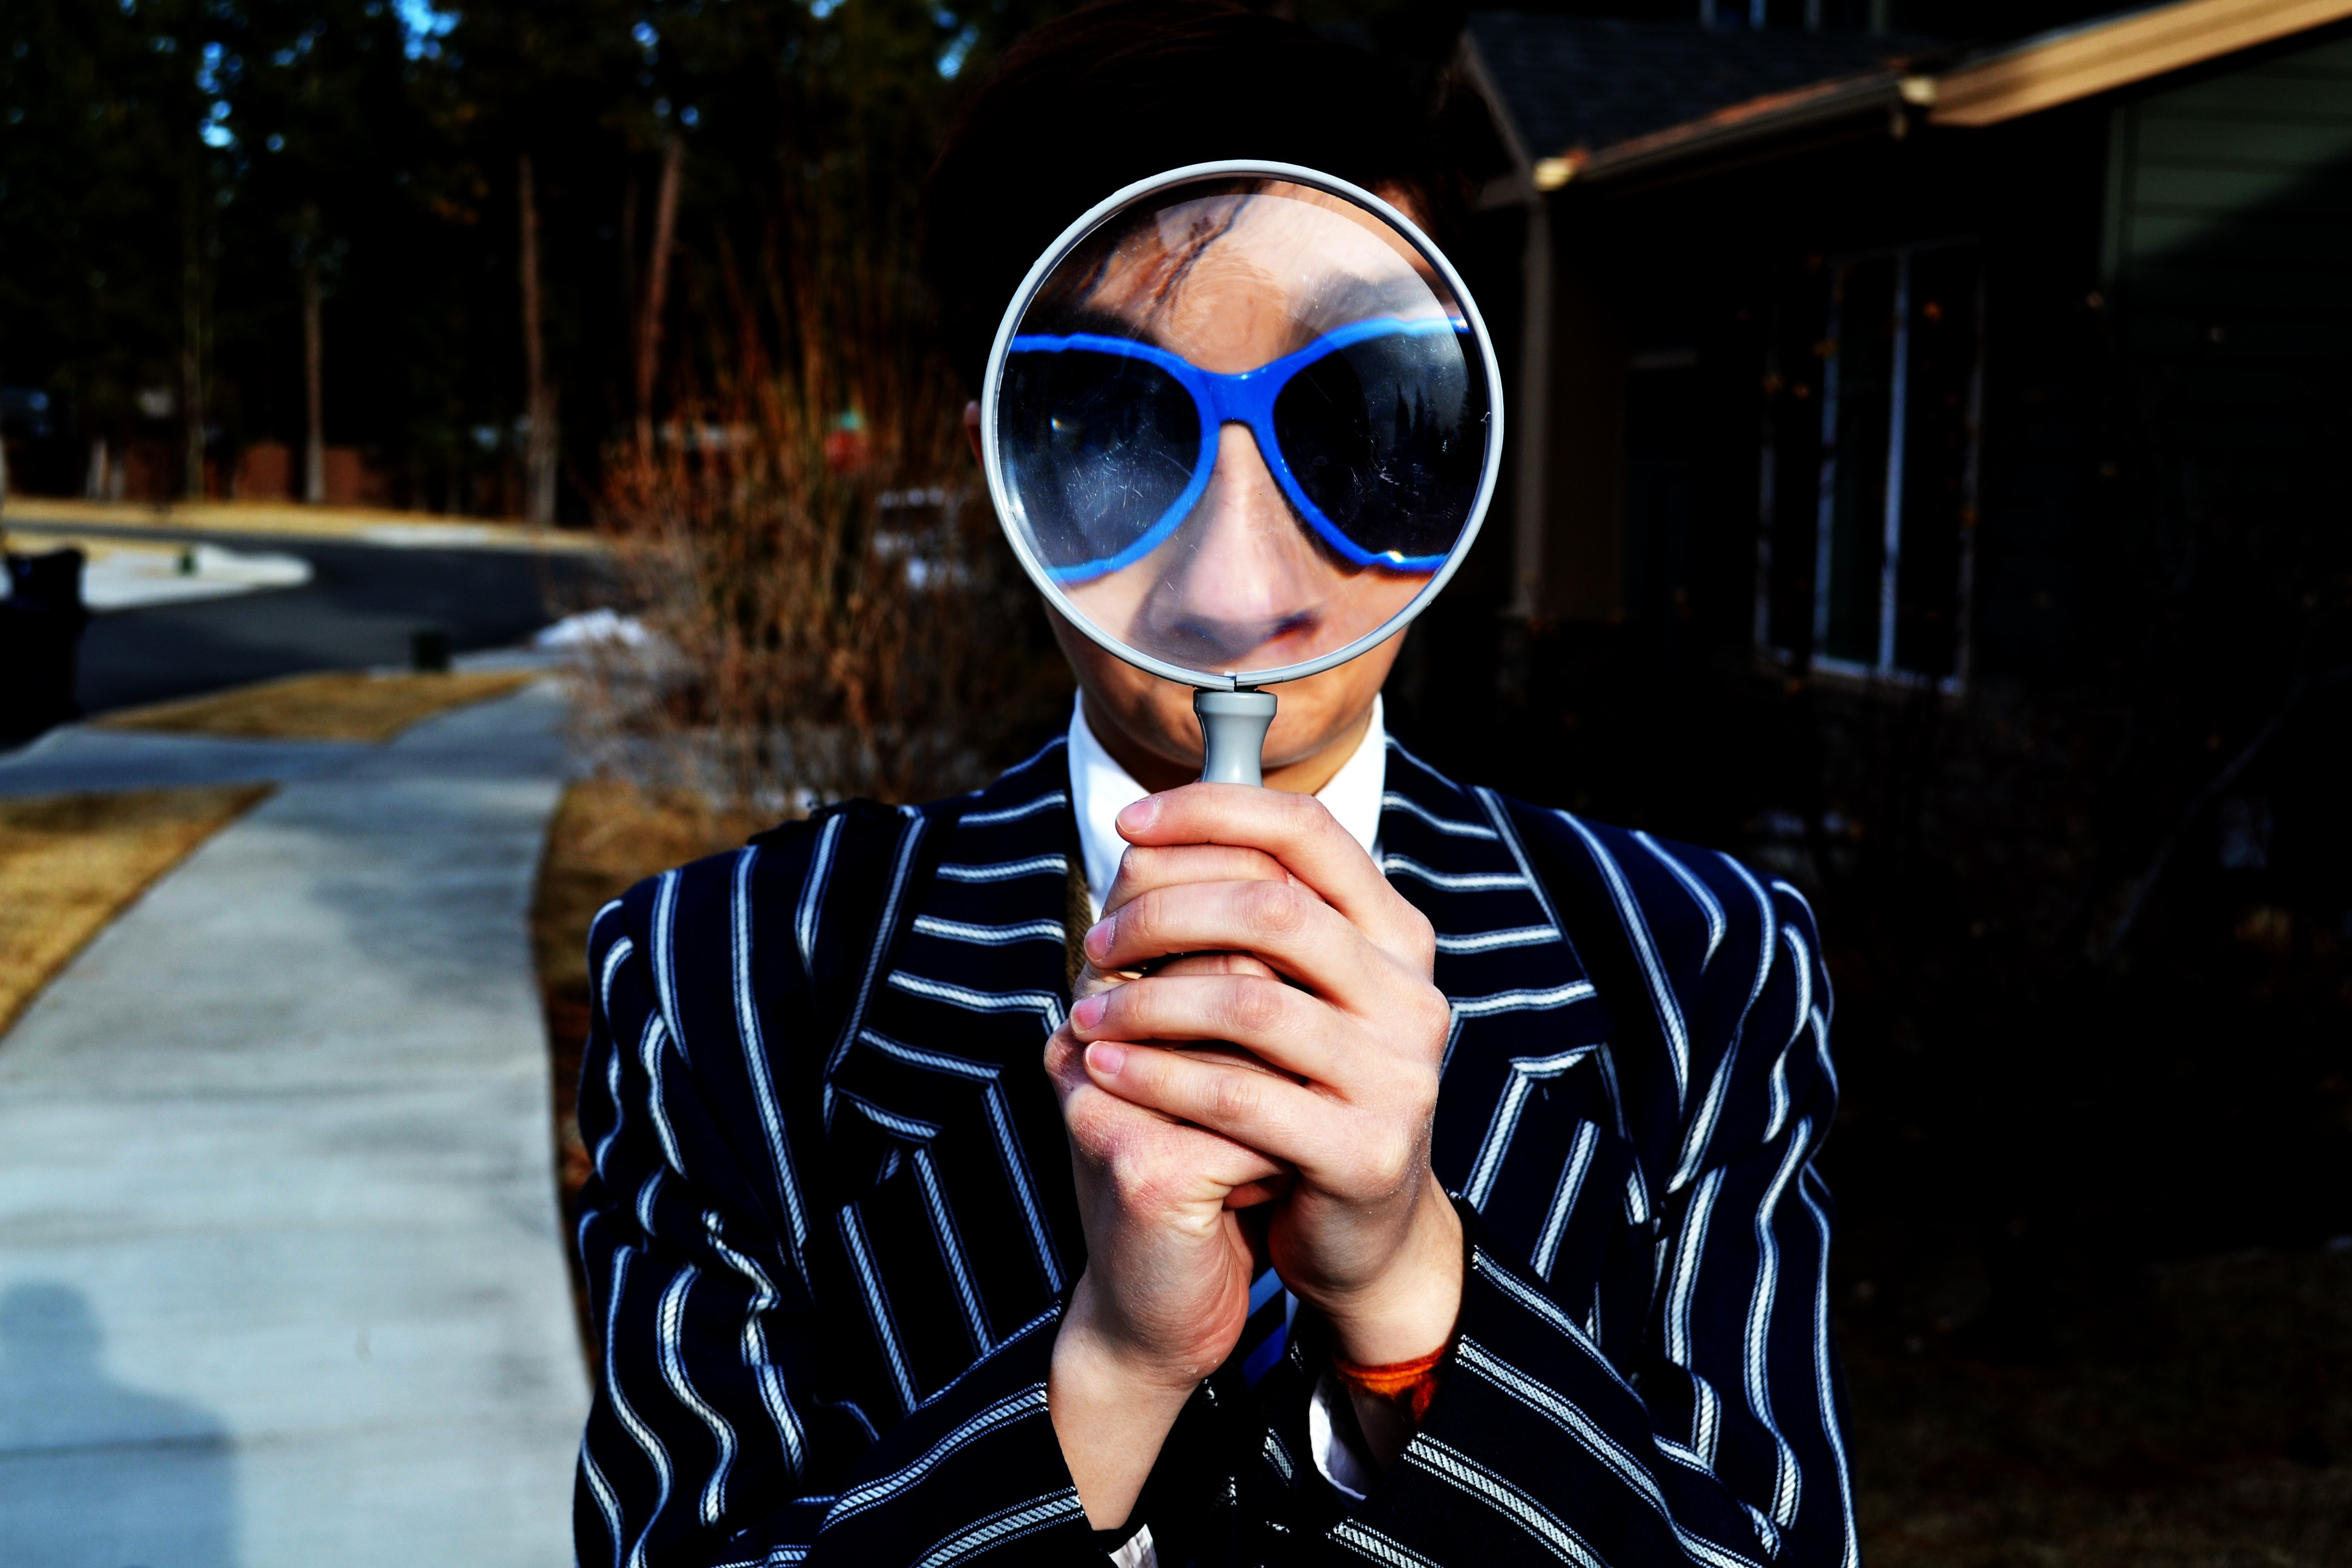 person using magnifying glass enlarging the appearance of his nose and sunglasses